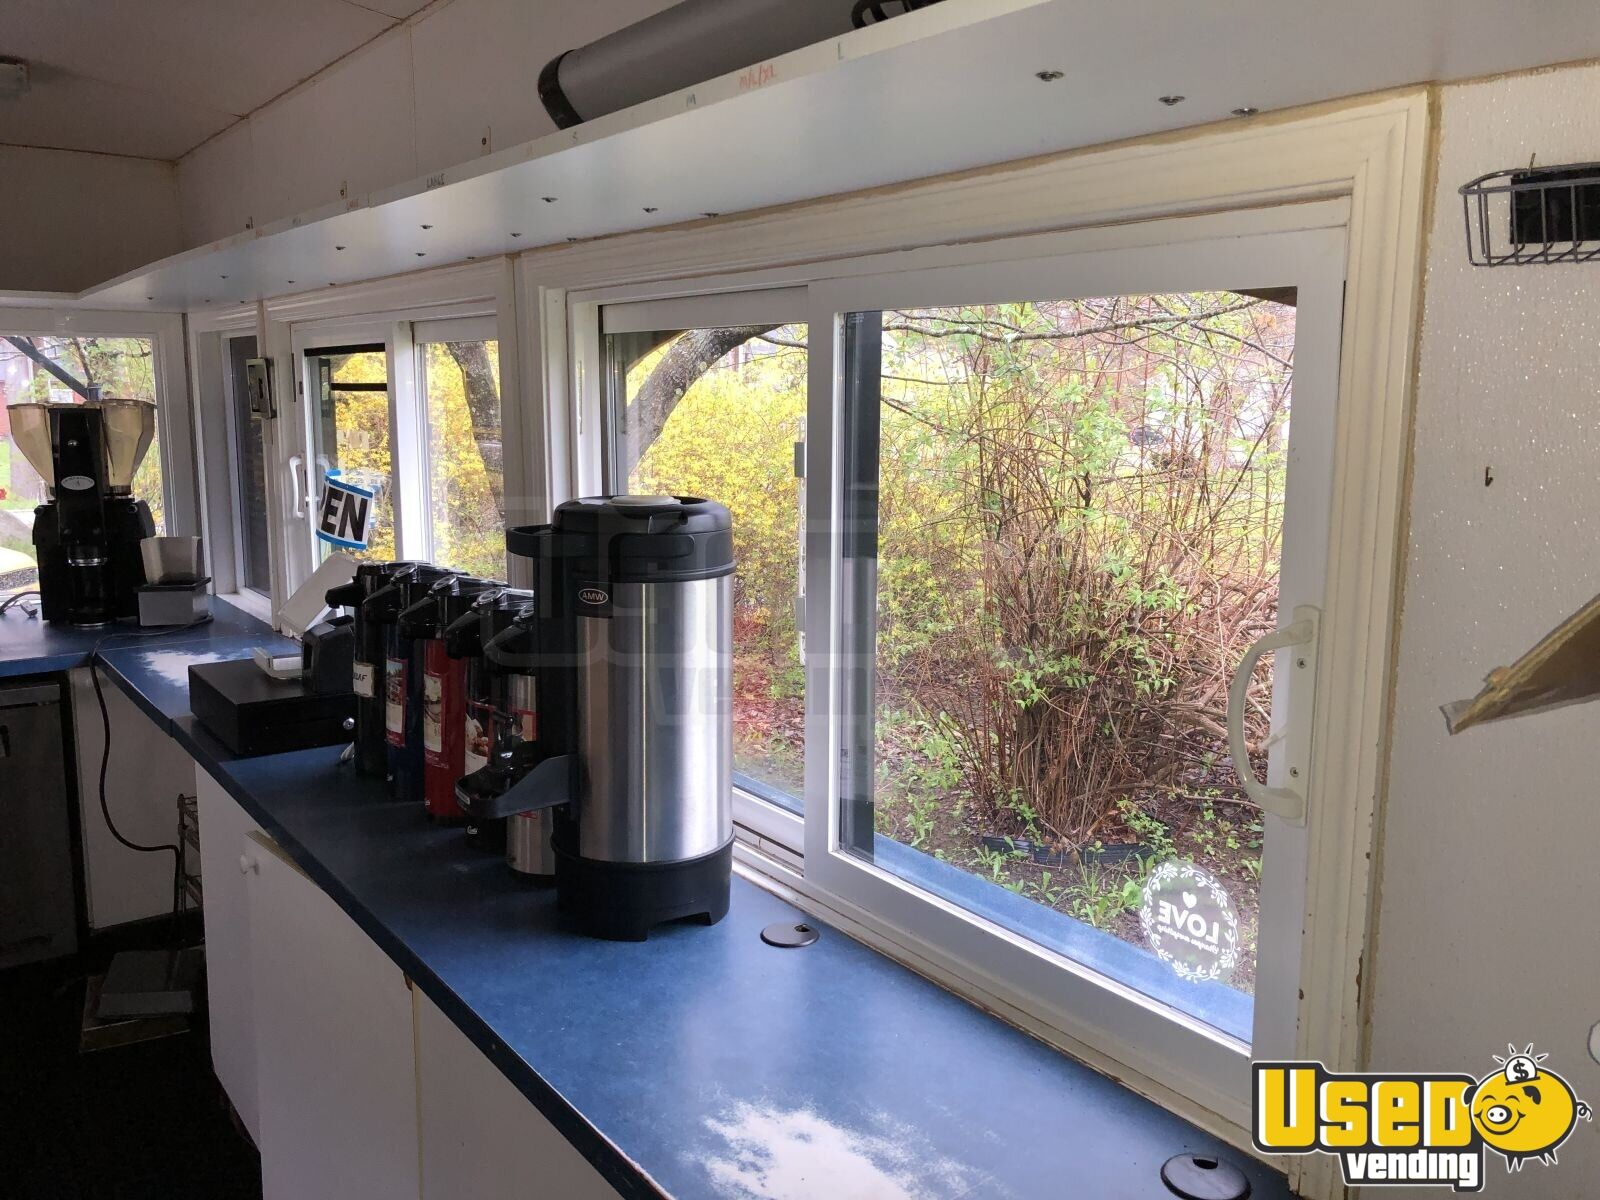 2004 Classic Trolley, Medford, Or Coffee Trailer Fire Extinguisher New Hampshire for Sale - 16